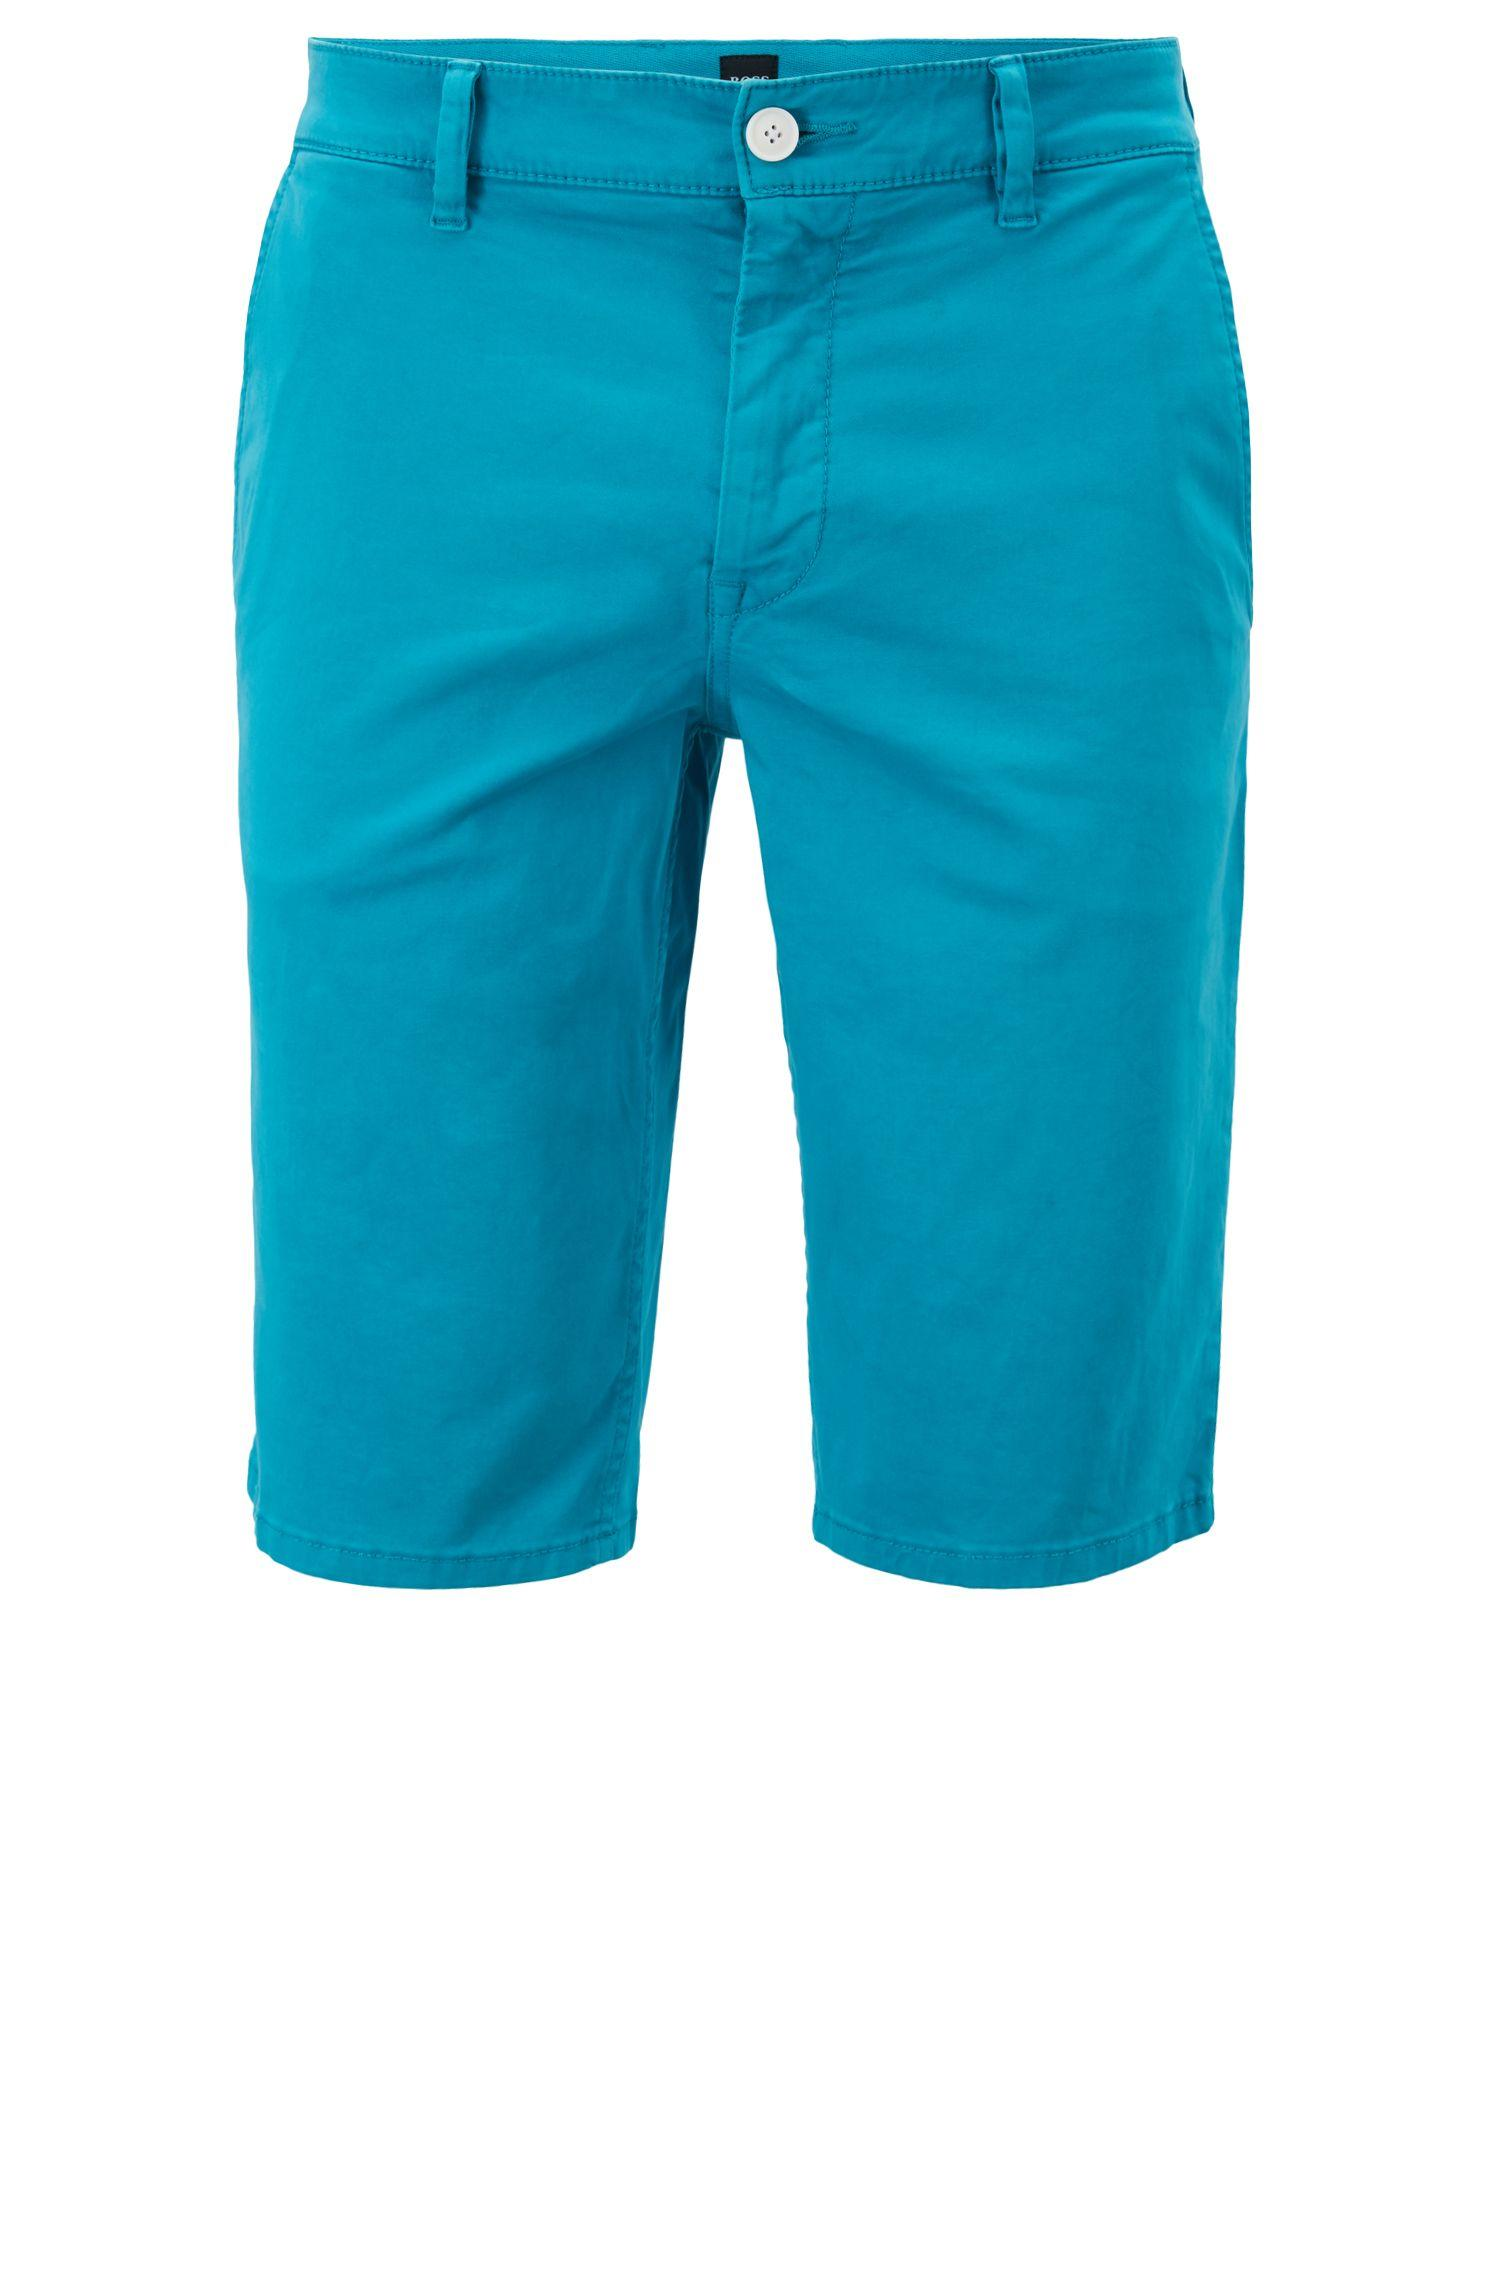 44f534331 BOSS Slim-fit Chino Shorts In Double-dyed Stretch Satin in Blue for ...